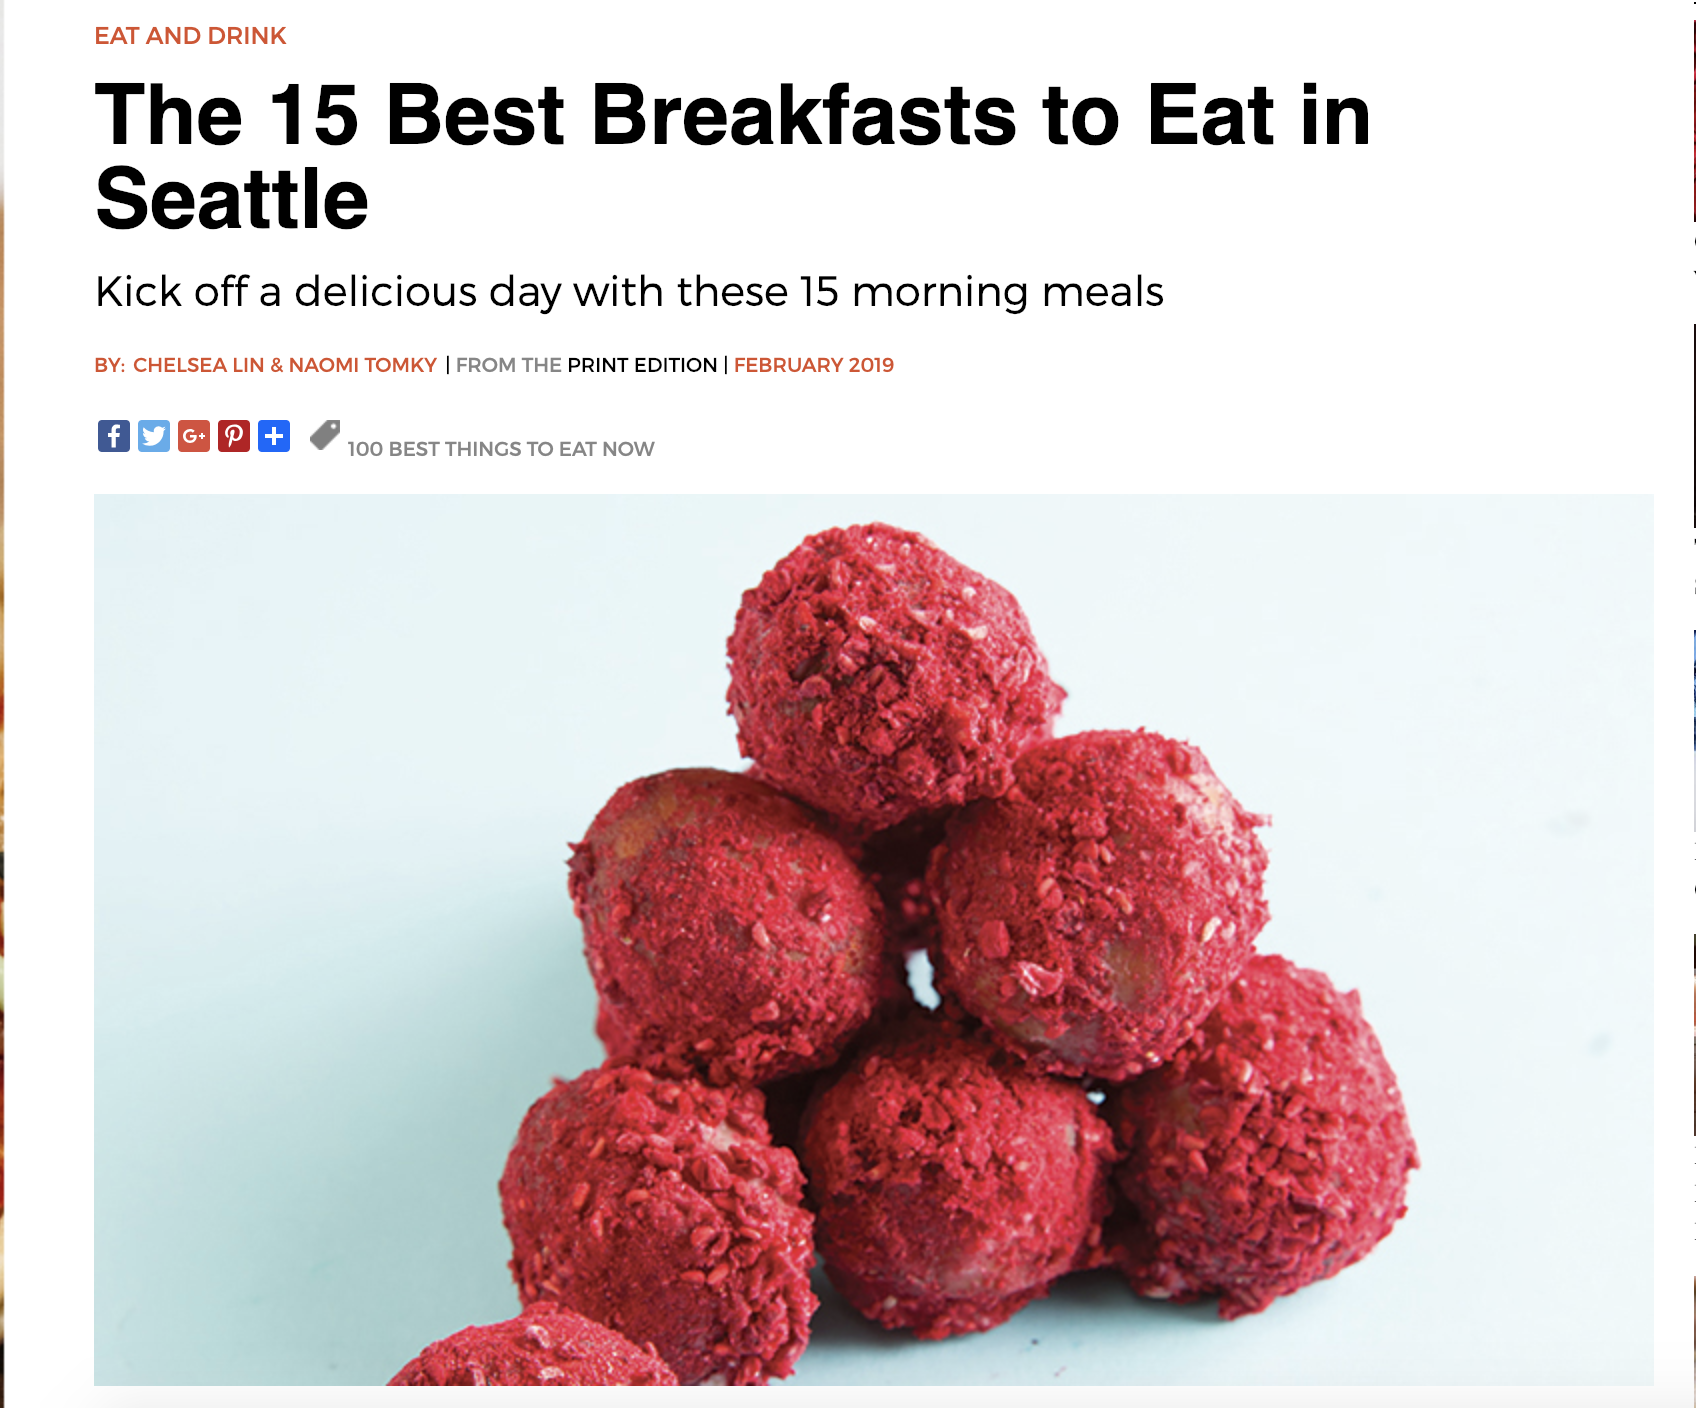 SEATTLE MAG FEB ISSUE  Our Raspberry holes made the list for top 100 Things to eat in Seattle!